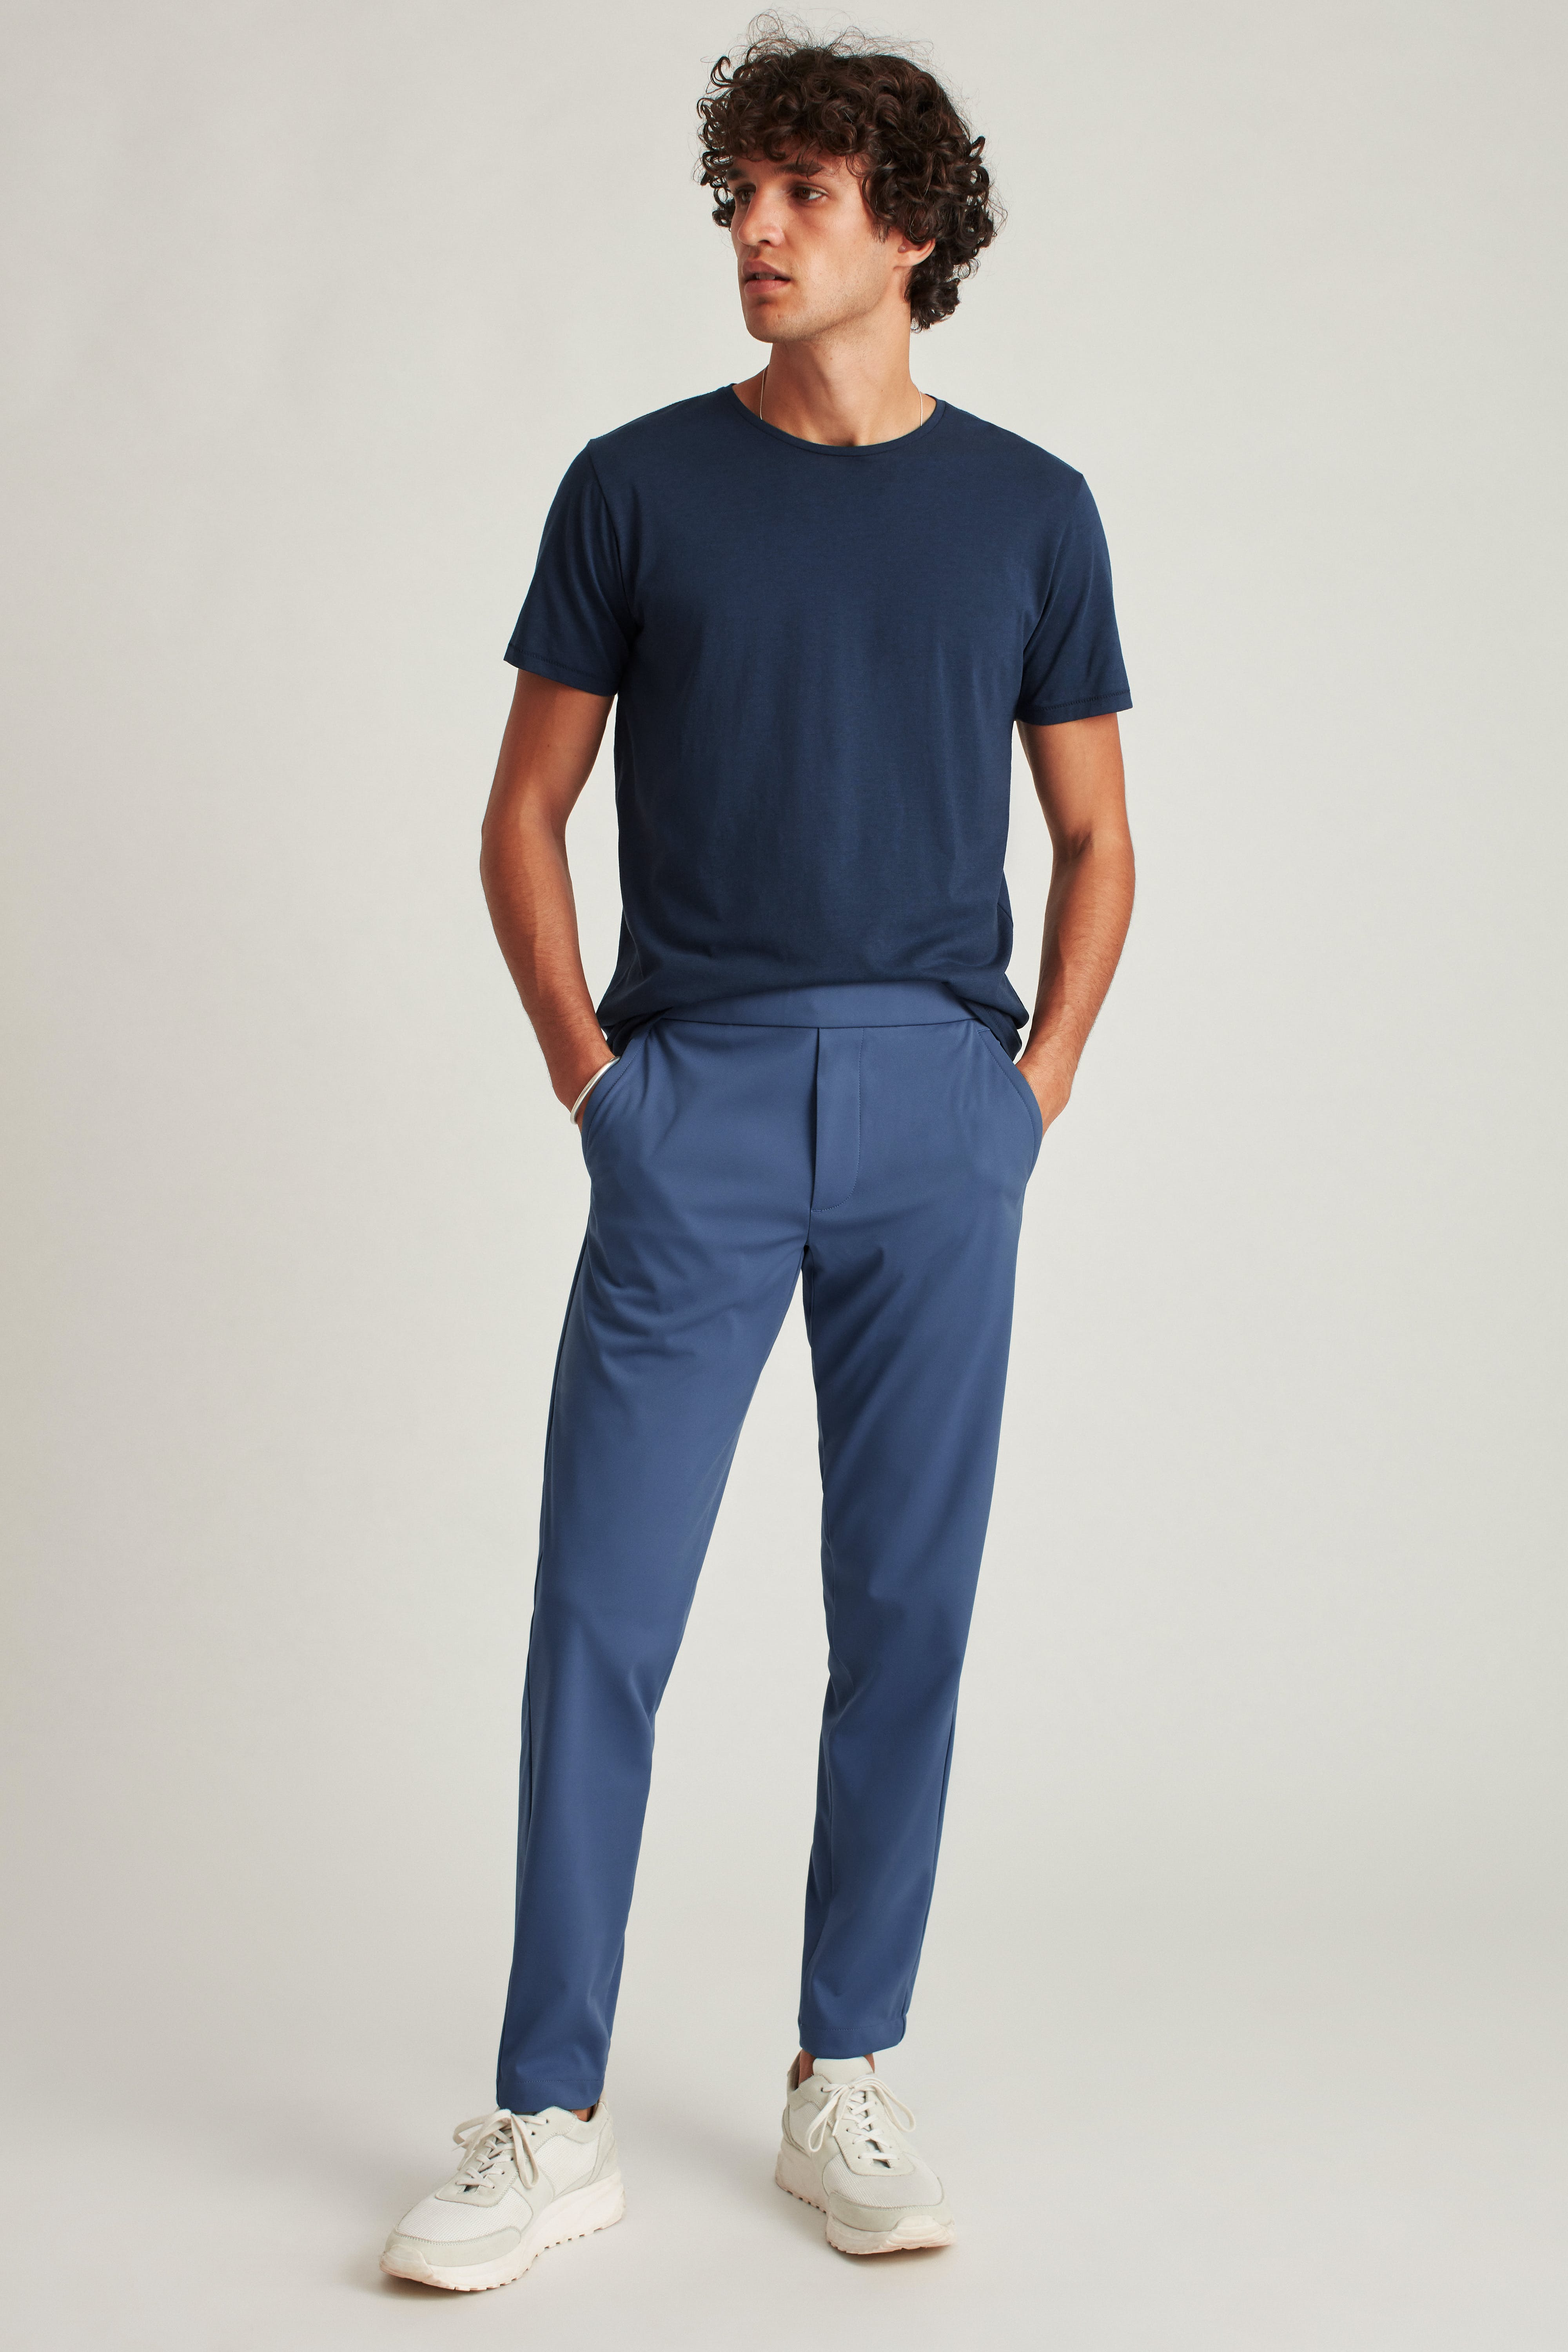 The WFHQ Pant